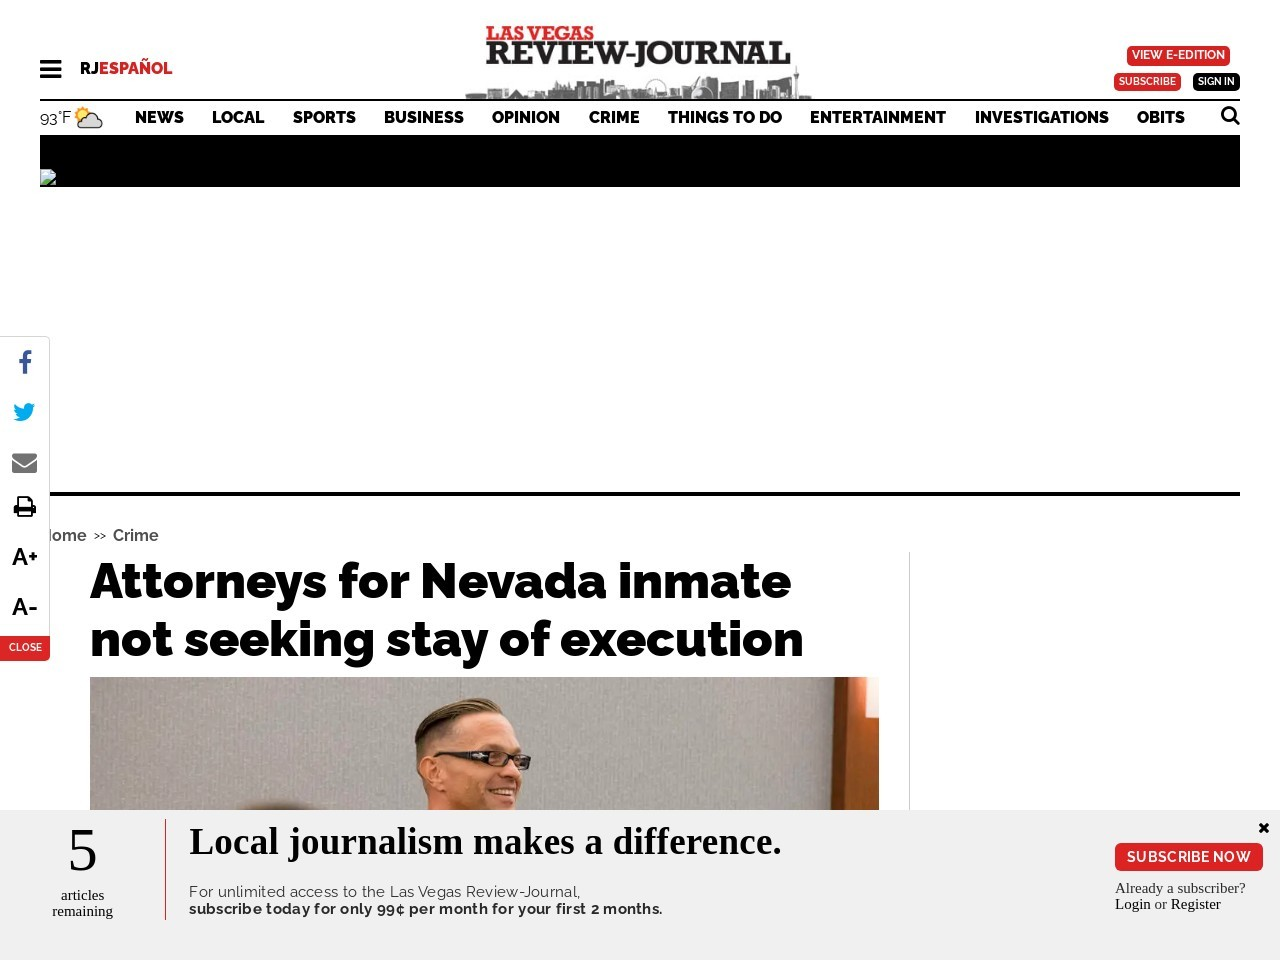 Attorneys for Nevada inmate not seeking stay of execution